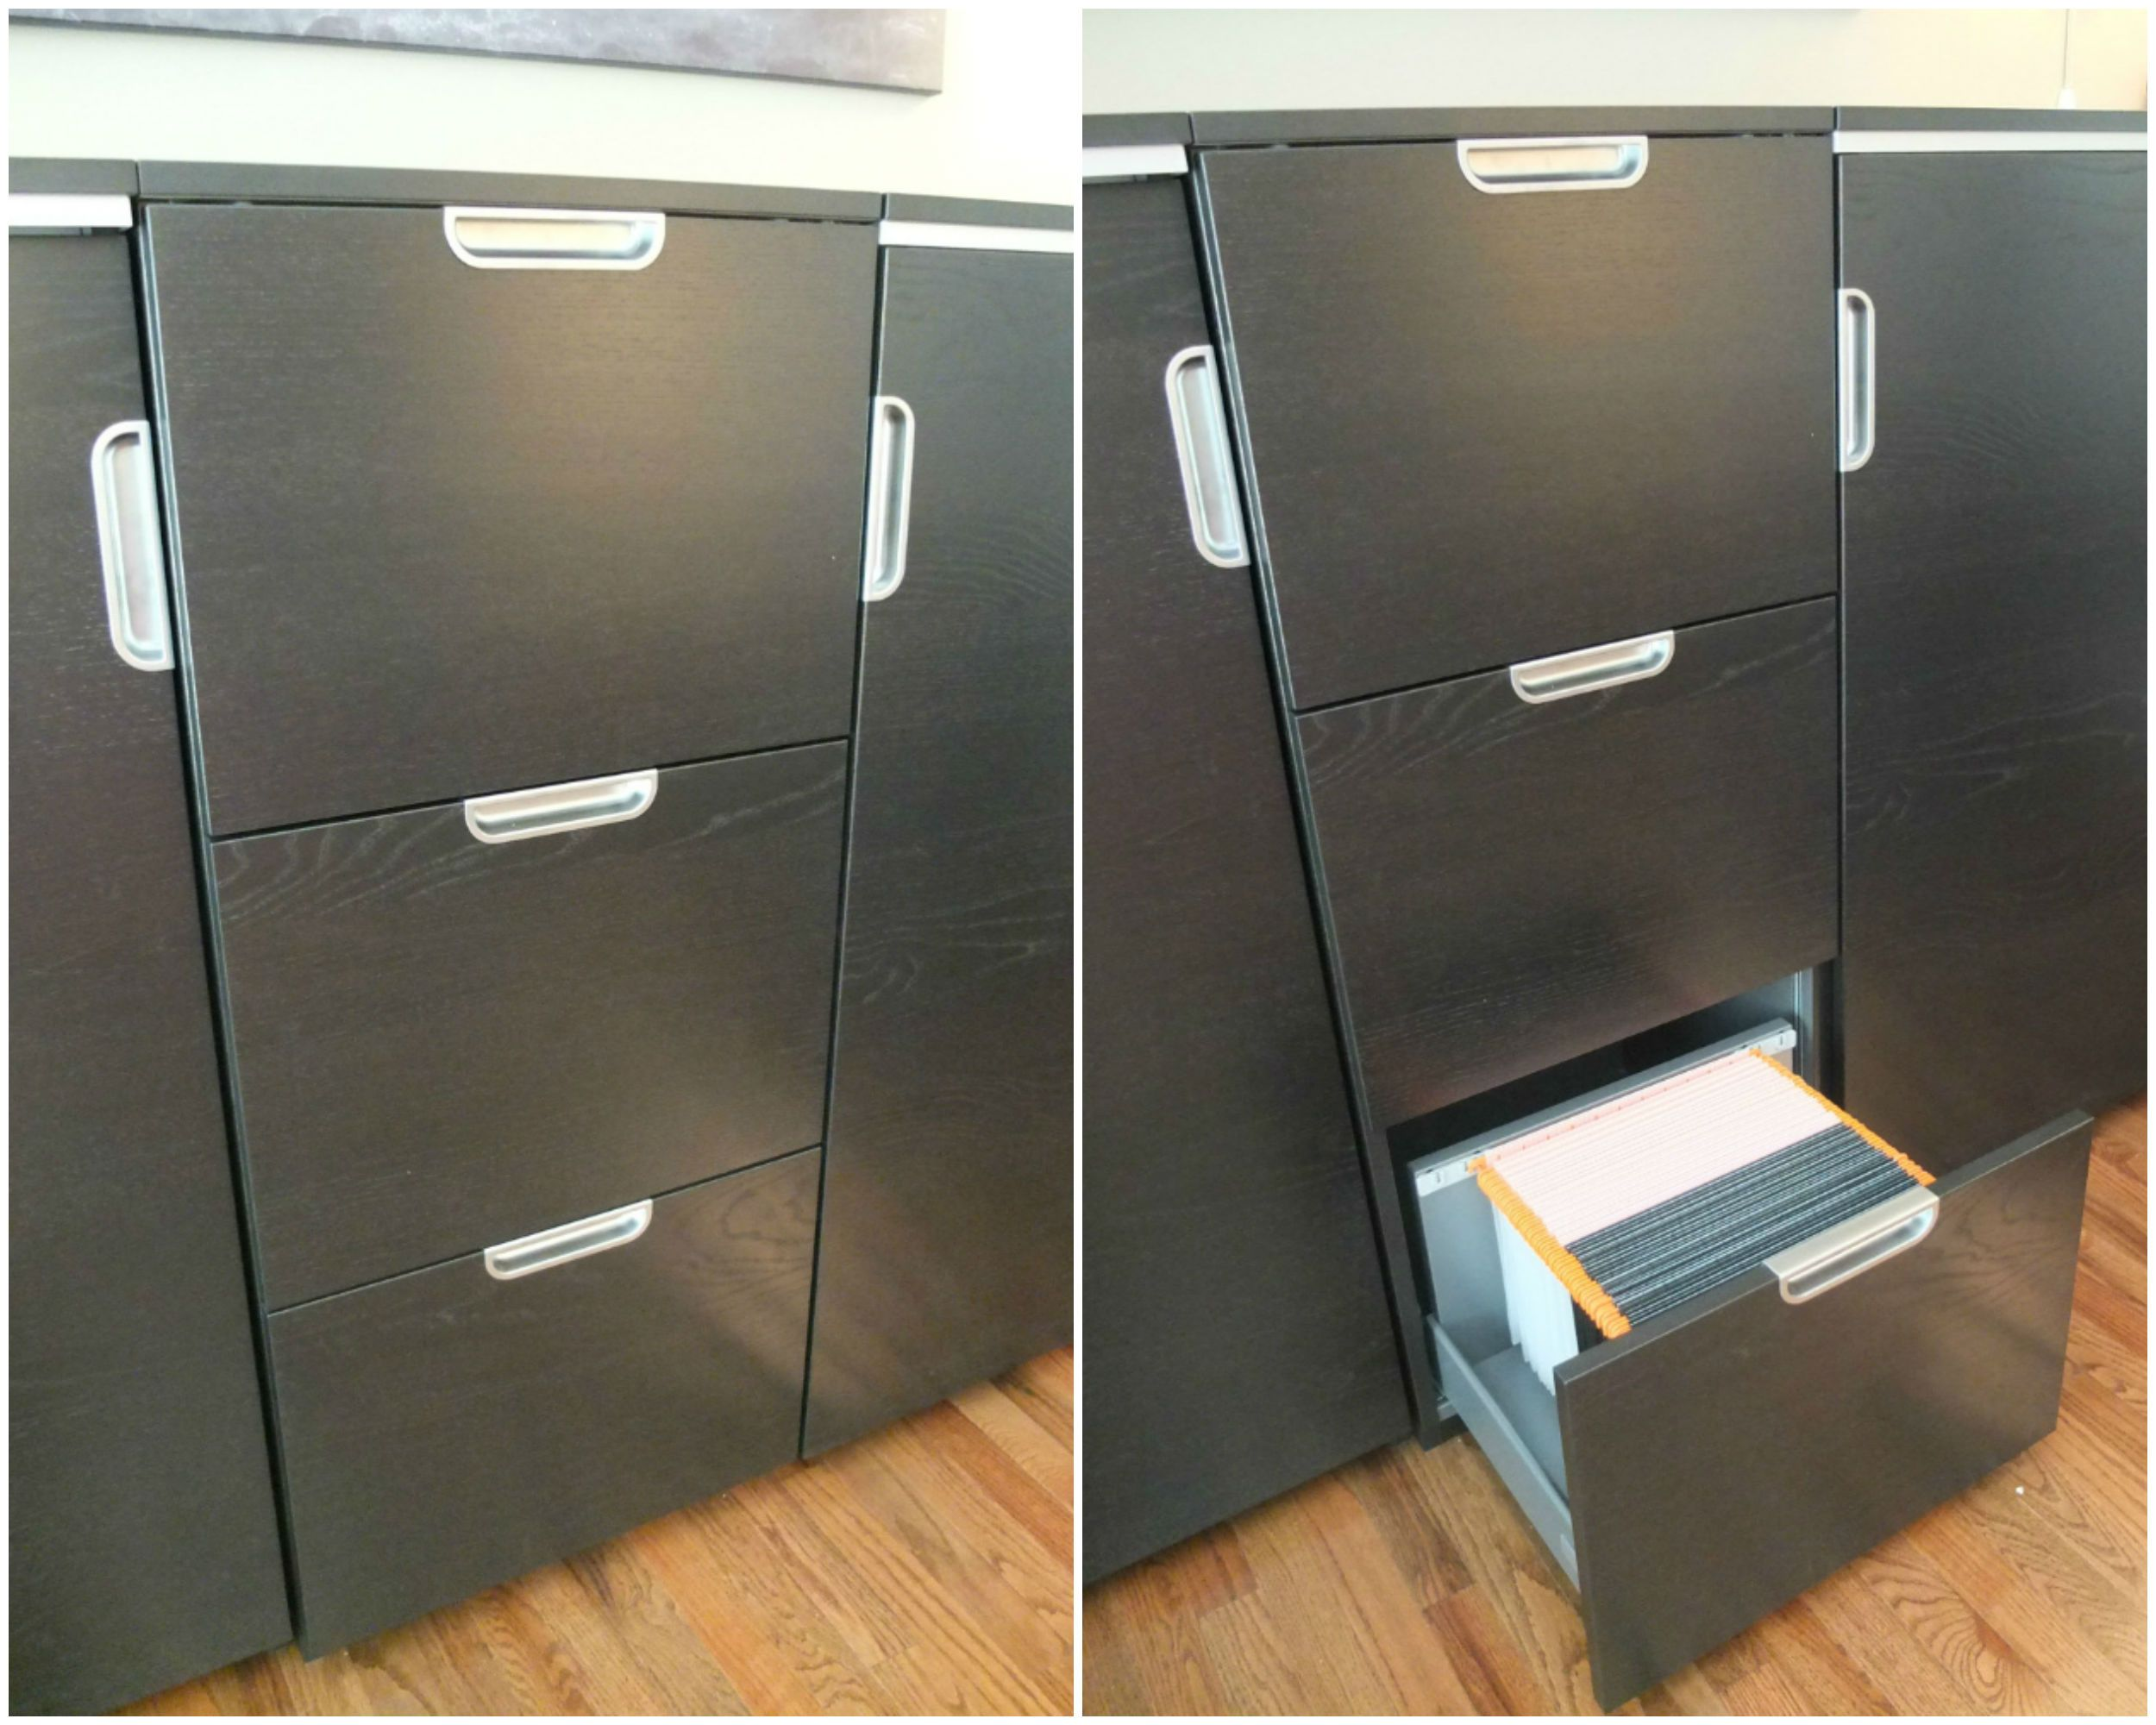 Keep your paperwork organized and secure in a GALANT file cabinet ...